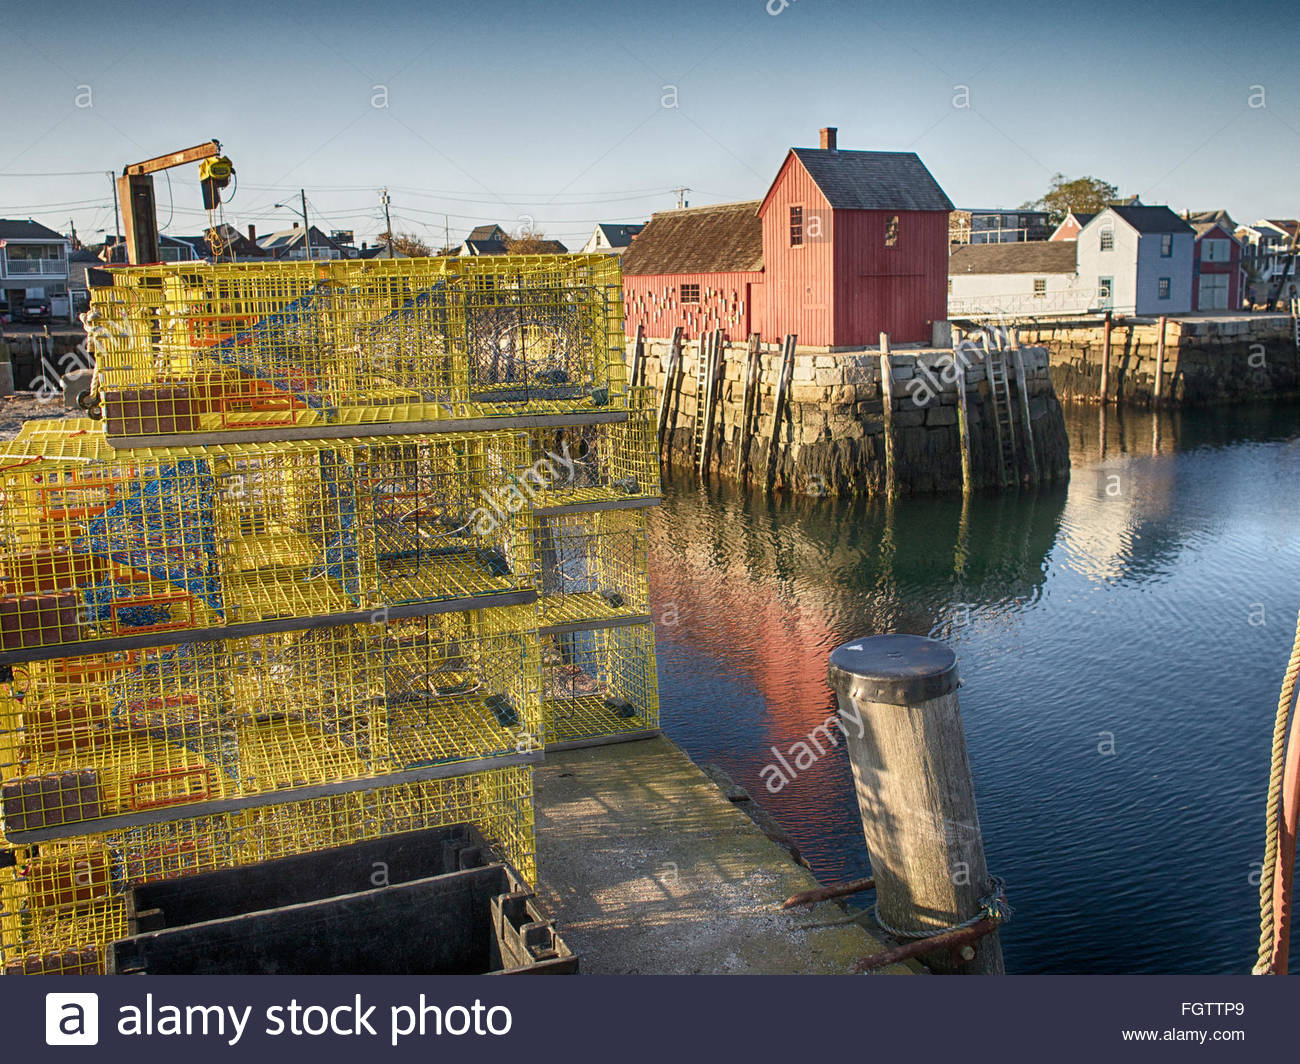 Lobster traps stacked near Motif Number 1 at Bradley Wharf in Rockport, Mass. - Stock Image